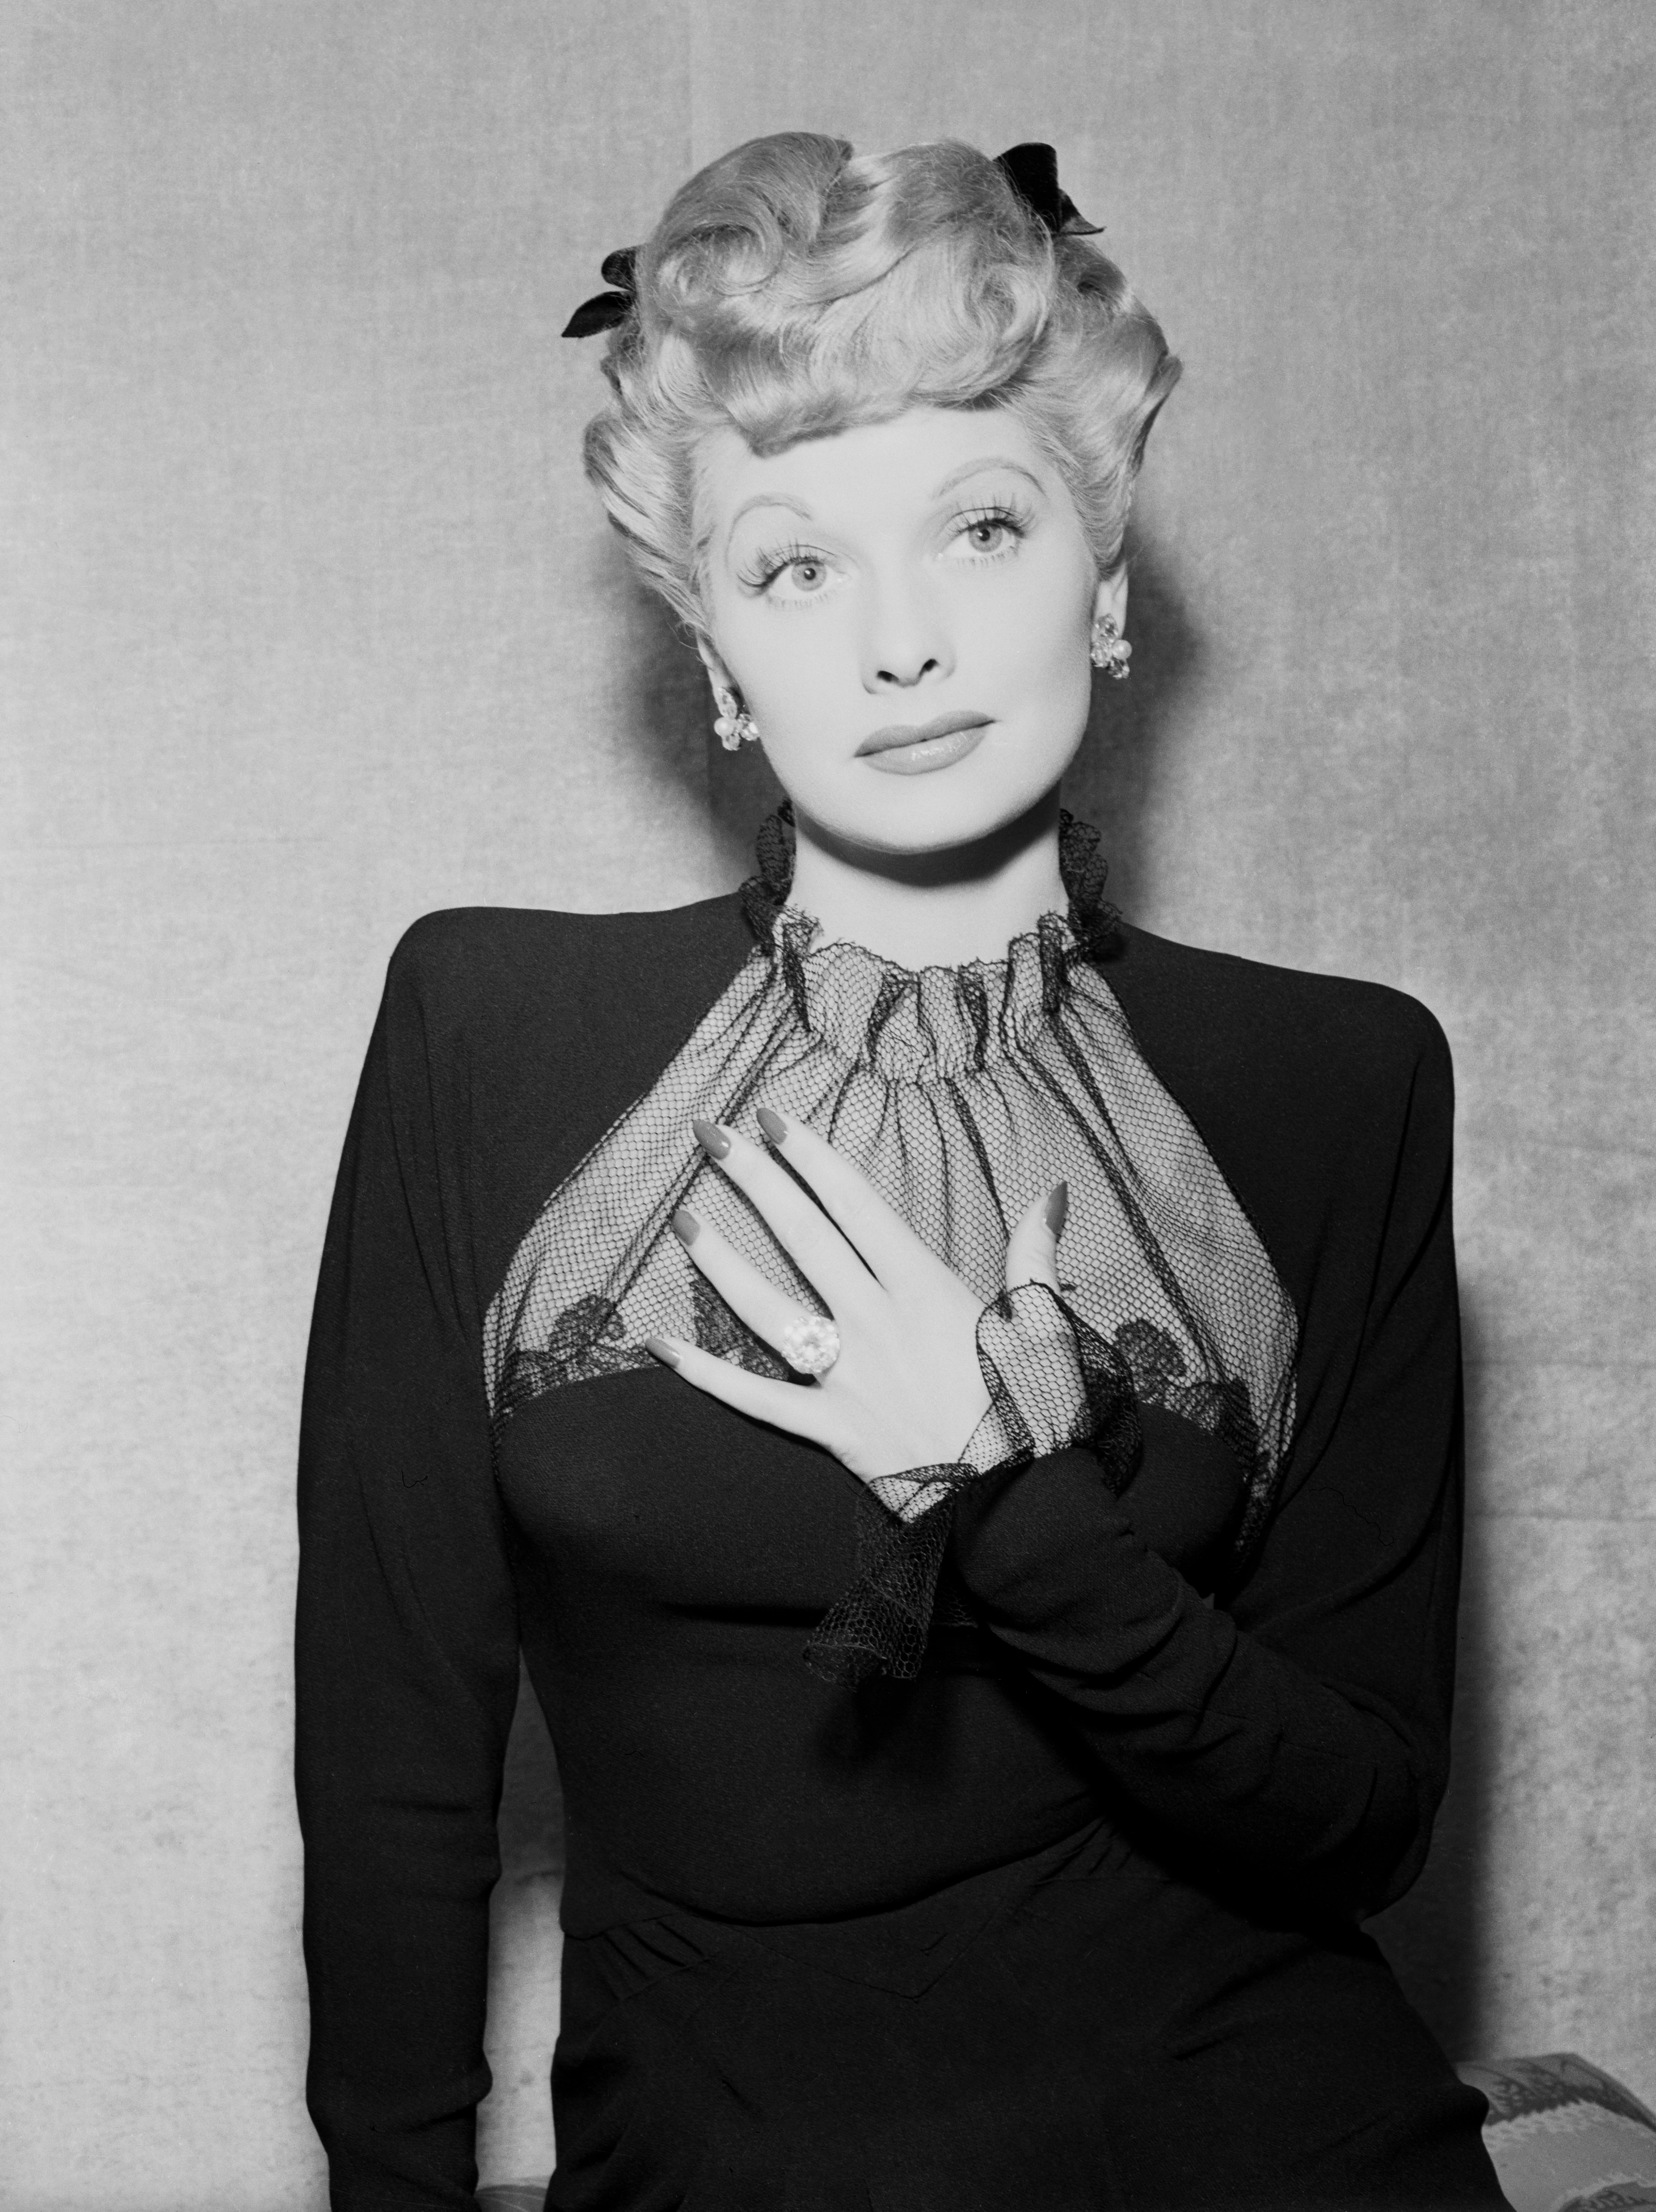 "08 Oct 1943 --- Original caption: Lucille Ball, who was currently starring in MGM's Meet The People,"" was married to Desi Arnaz, who was later in the Army. With marriages then expected to reach an all time high of 2,000,000 in 1943, public interest in engagement and marriage rings was correspondingly high. Lucille Ball is shown wearing the ring chosen by herself as a Hollywood bride to be. --- Image by © Bettmann/CORBIS"